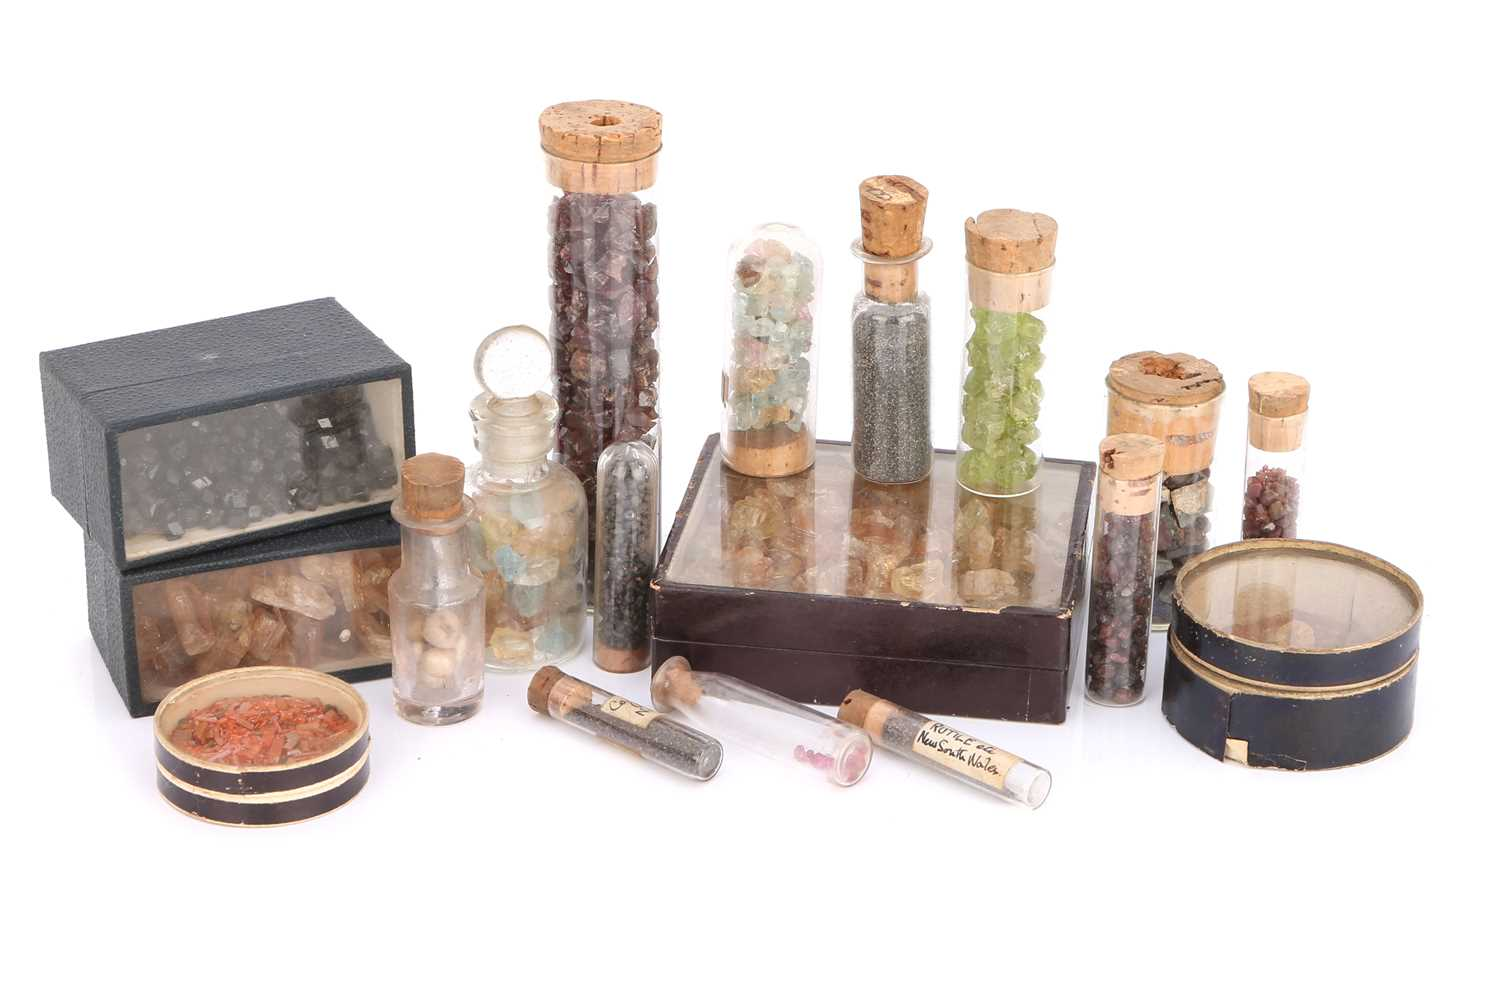 Lot 38-A Collection of Stock Minerals From the Firm of Gregory & Bottley